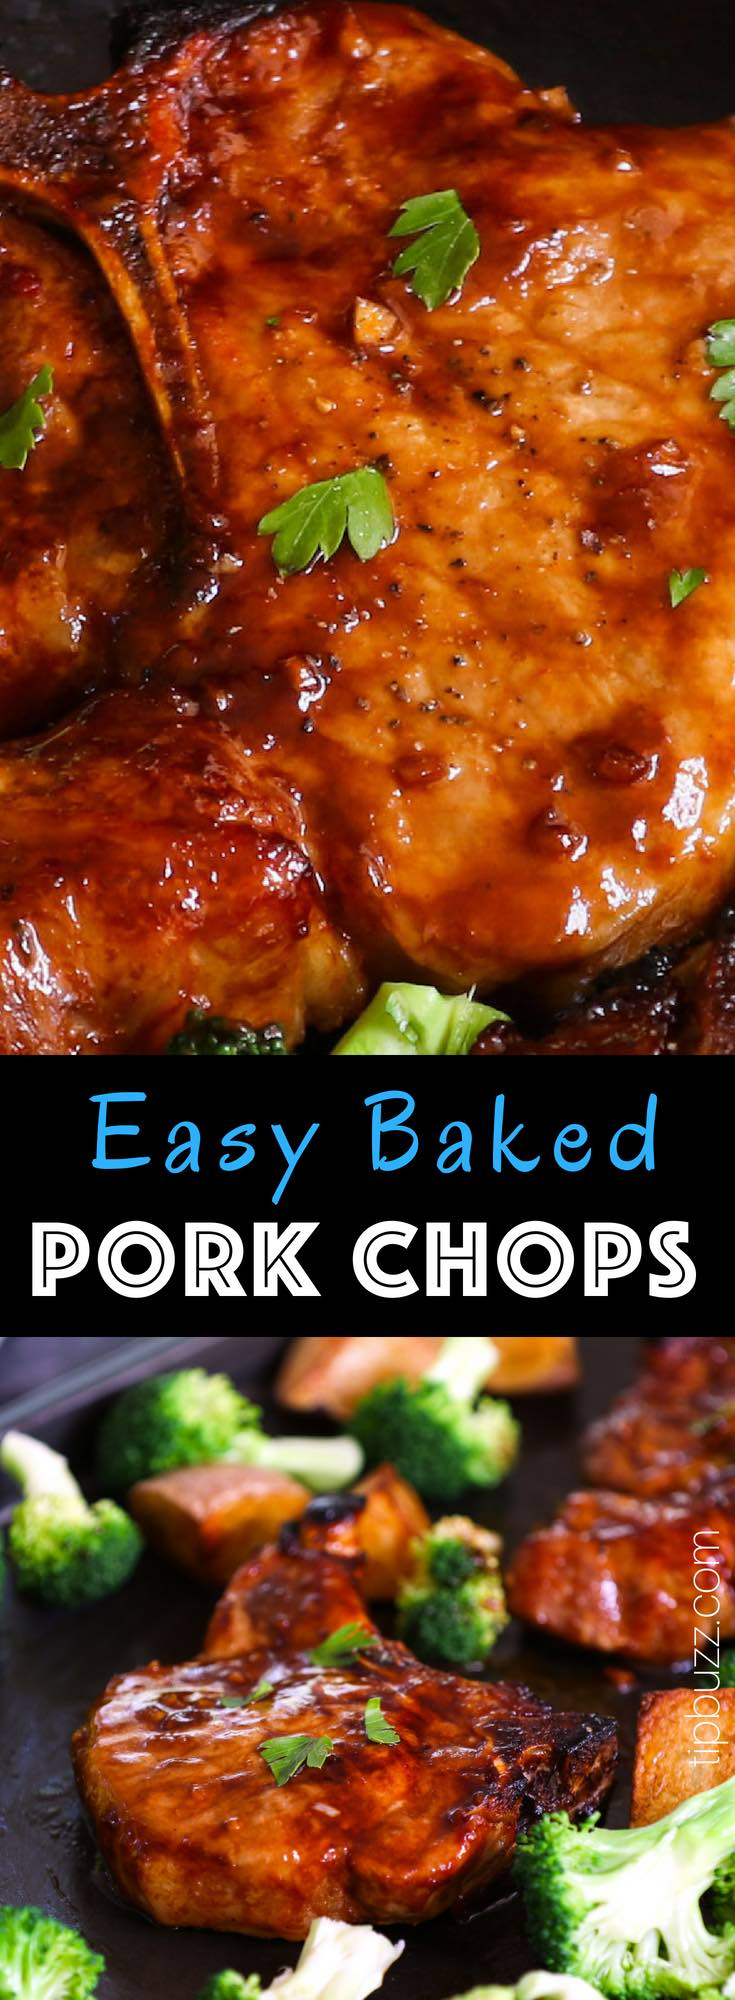 Baked Bone-in Pork Chops are juicy, tender, sticky and garlicky.  They are full of flavor and really easy to make. The perfect and never-dry pork chops with restaurant quality can be easily achieved with a few simple tips. #PorkChops #BakedPorkChops #BoneInPorkChops